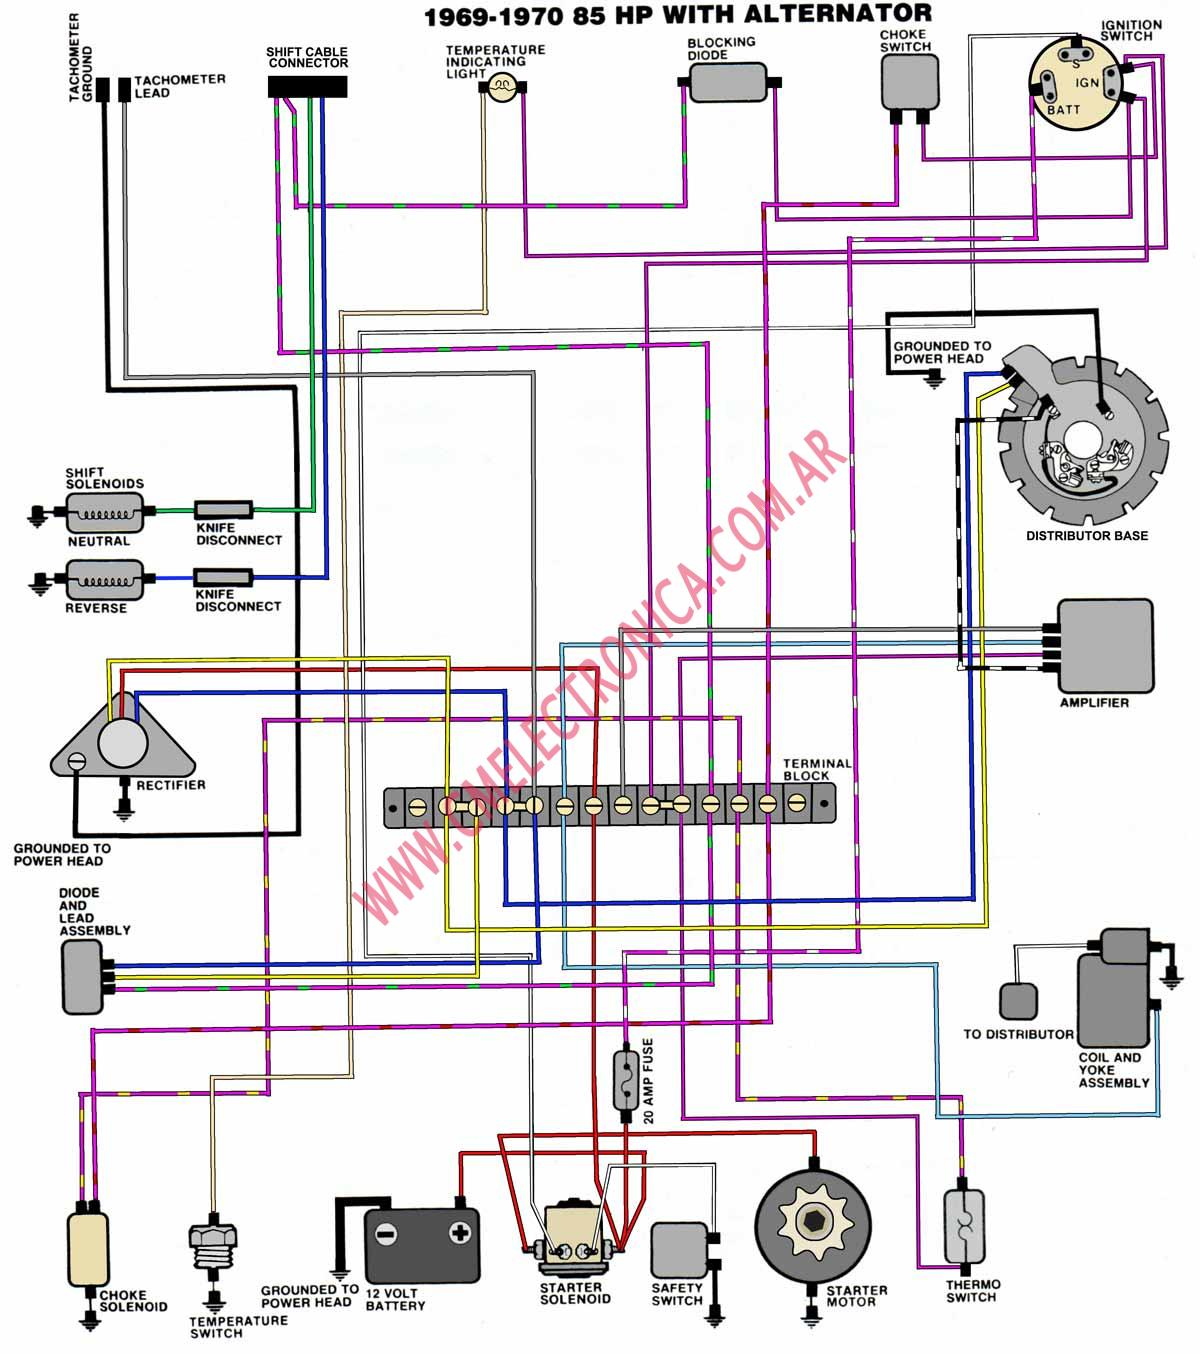 yamaha 225hp wiring diagram wiring diagrams and schematics yamaha outboard wiring harness